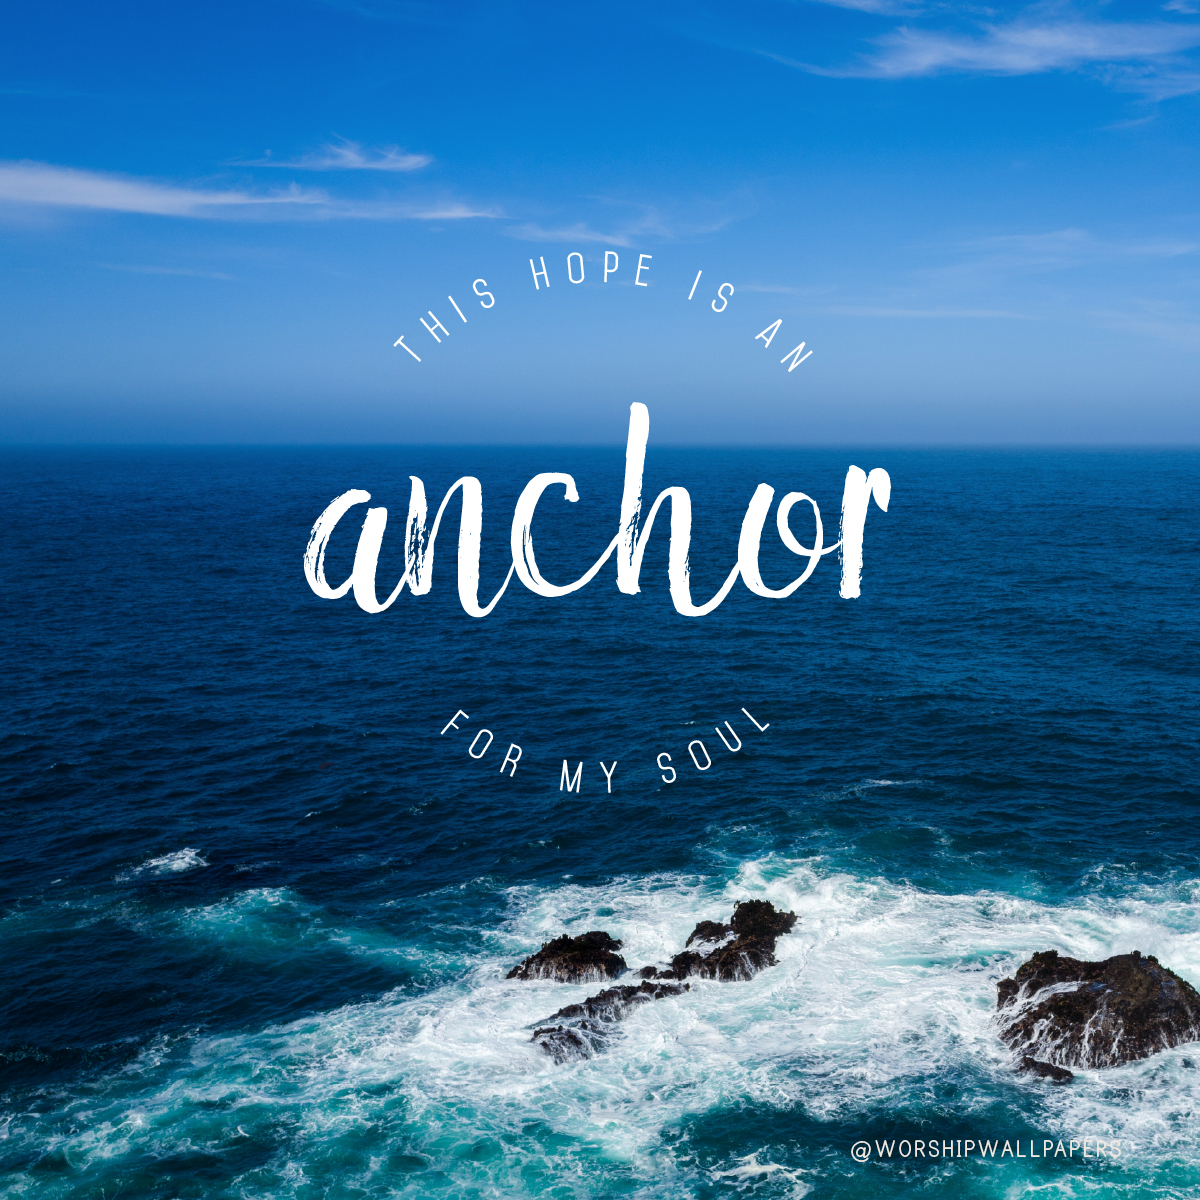 Anchor Hillsong United Laptop Wallpapers Bible Verses 1078709 Hd Wallpaper Backgrounds Download